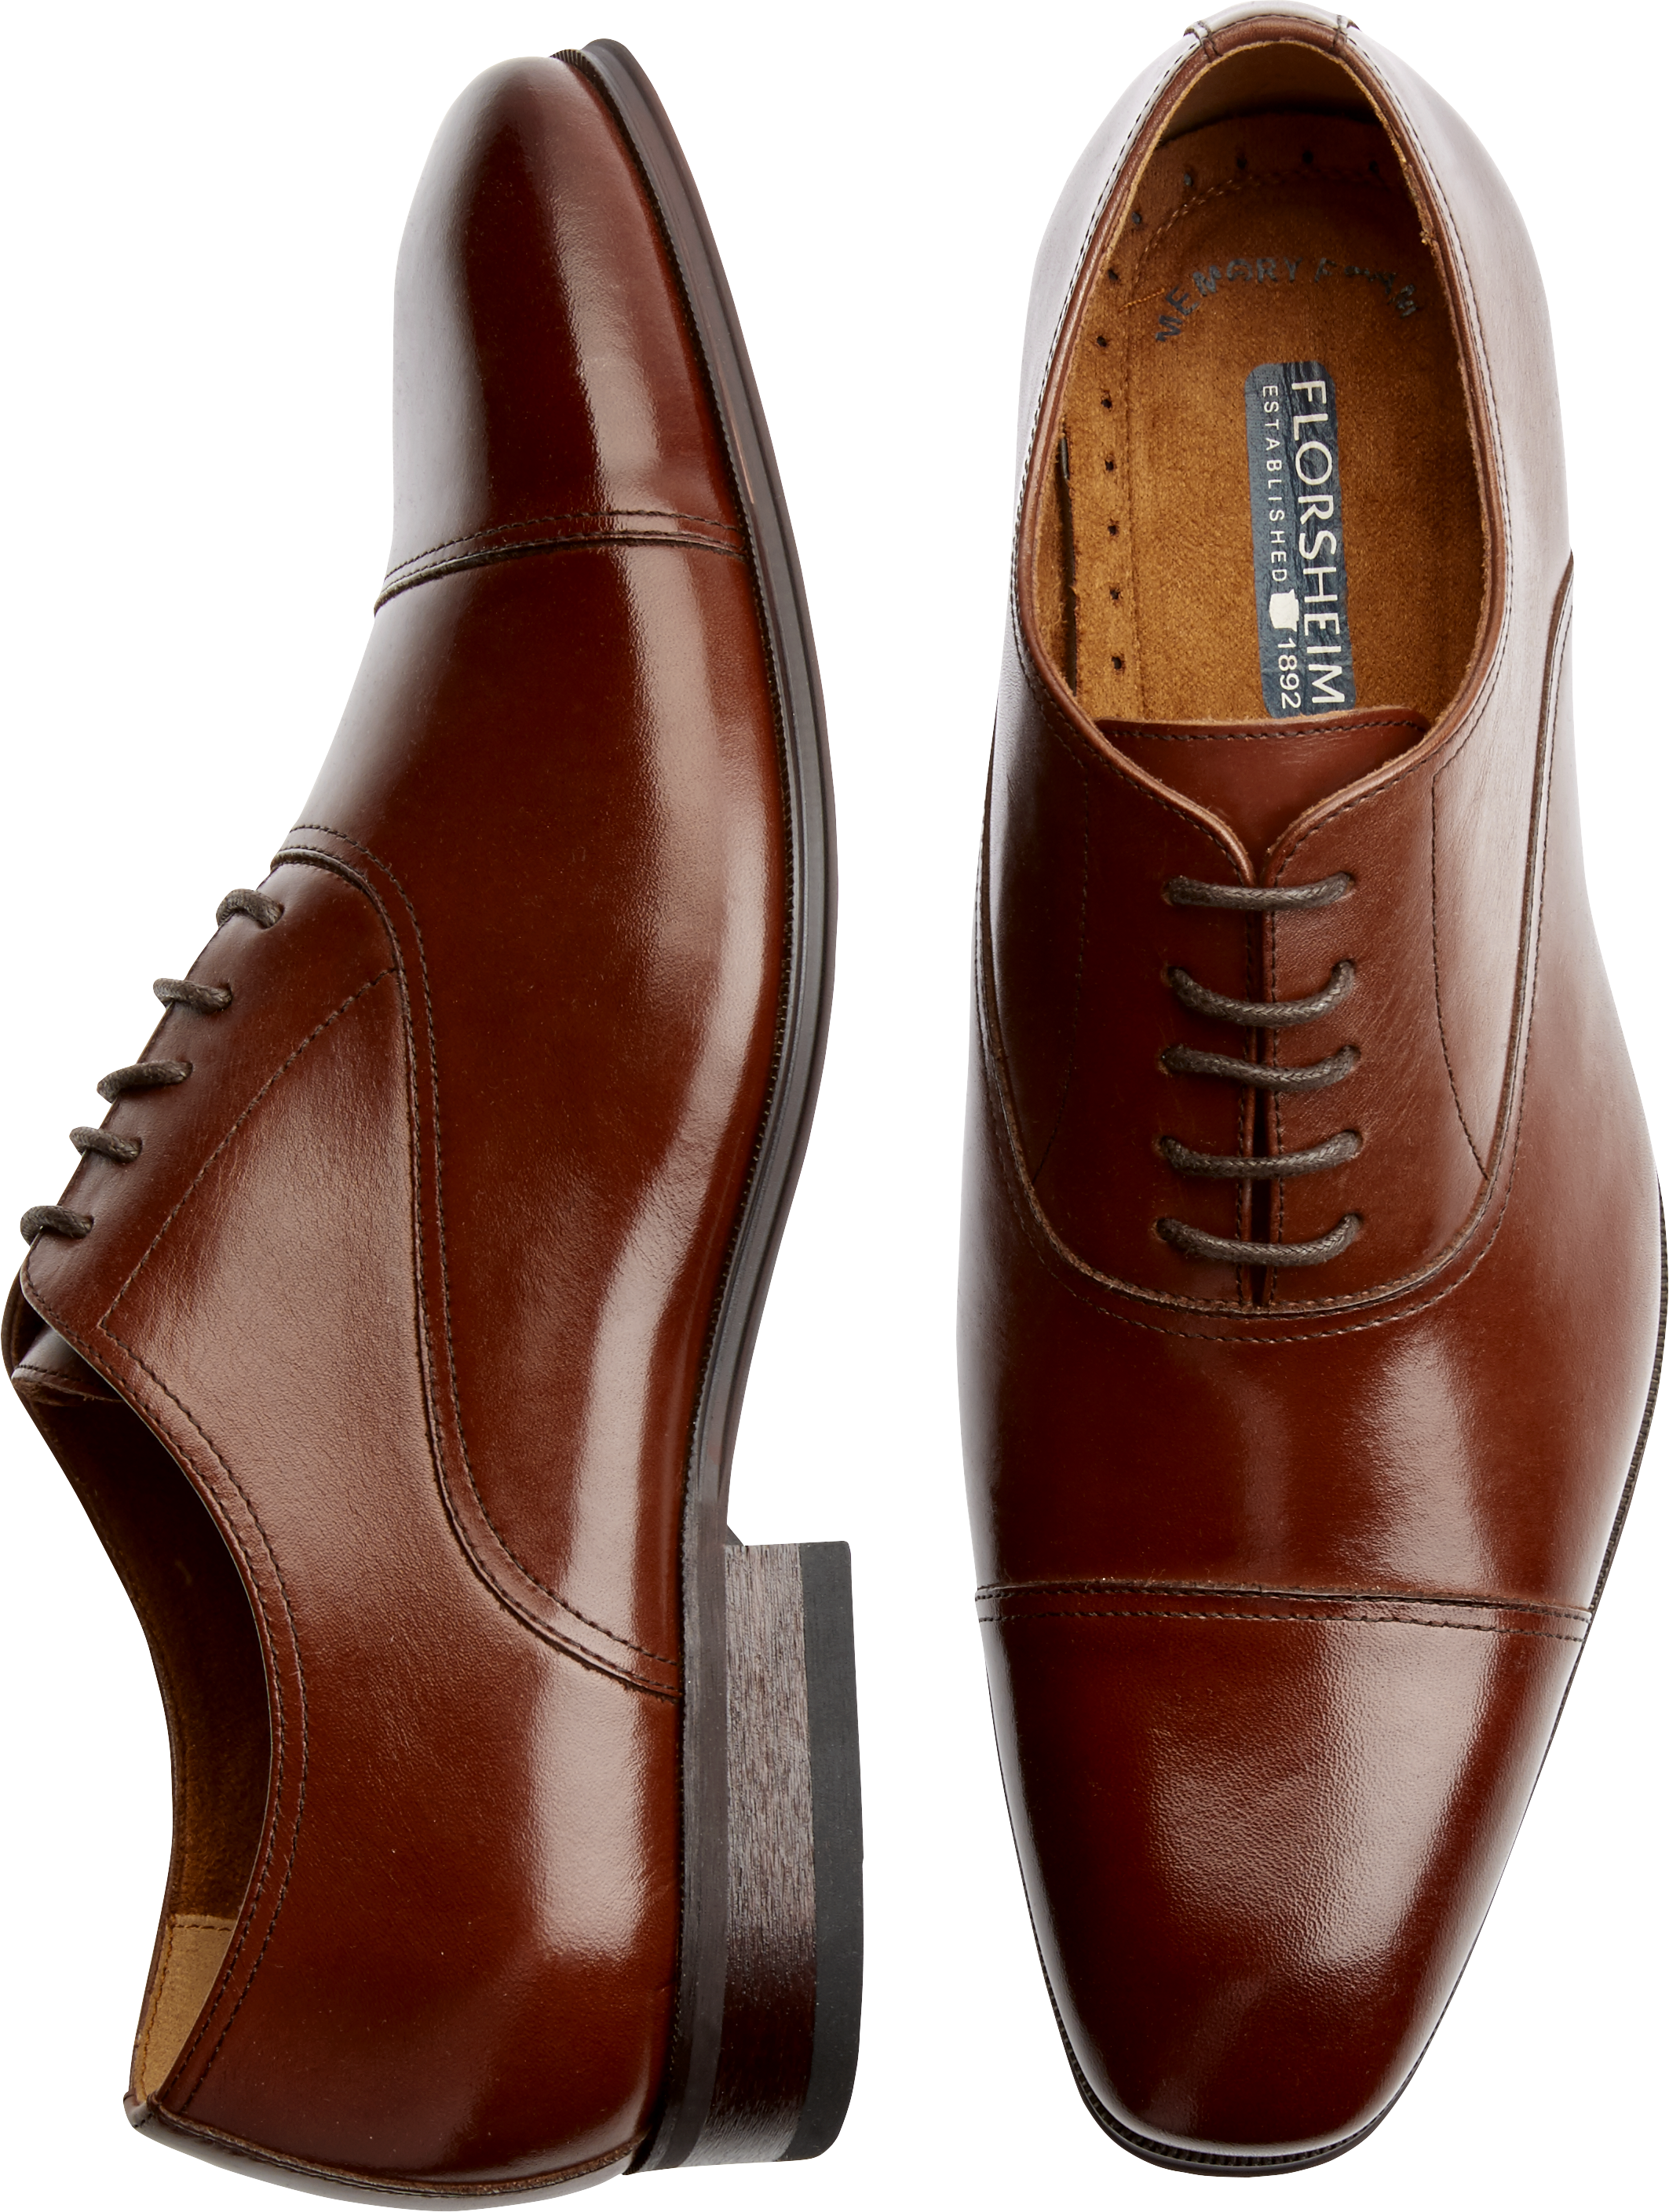 Mens Florsheim Shoes Shoes  Florsheim Francisco Cognac CapToe Oxfords  Mens Wearhouse